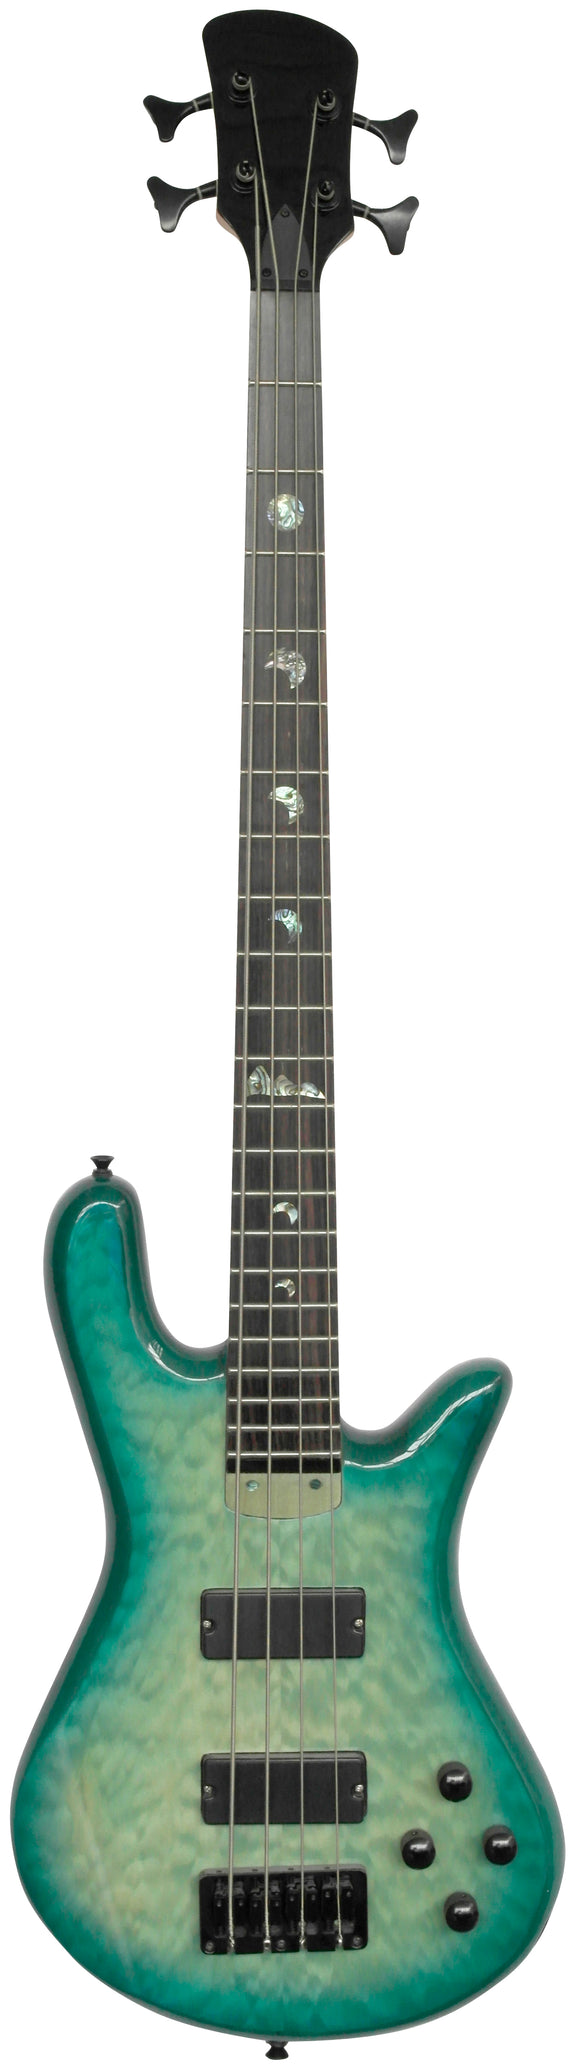 Stretton Payne Custom Shop ELECTRIC BASS GUITAR 4 String Turquois